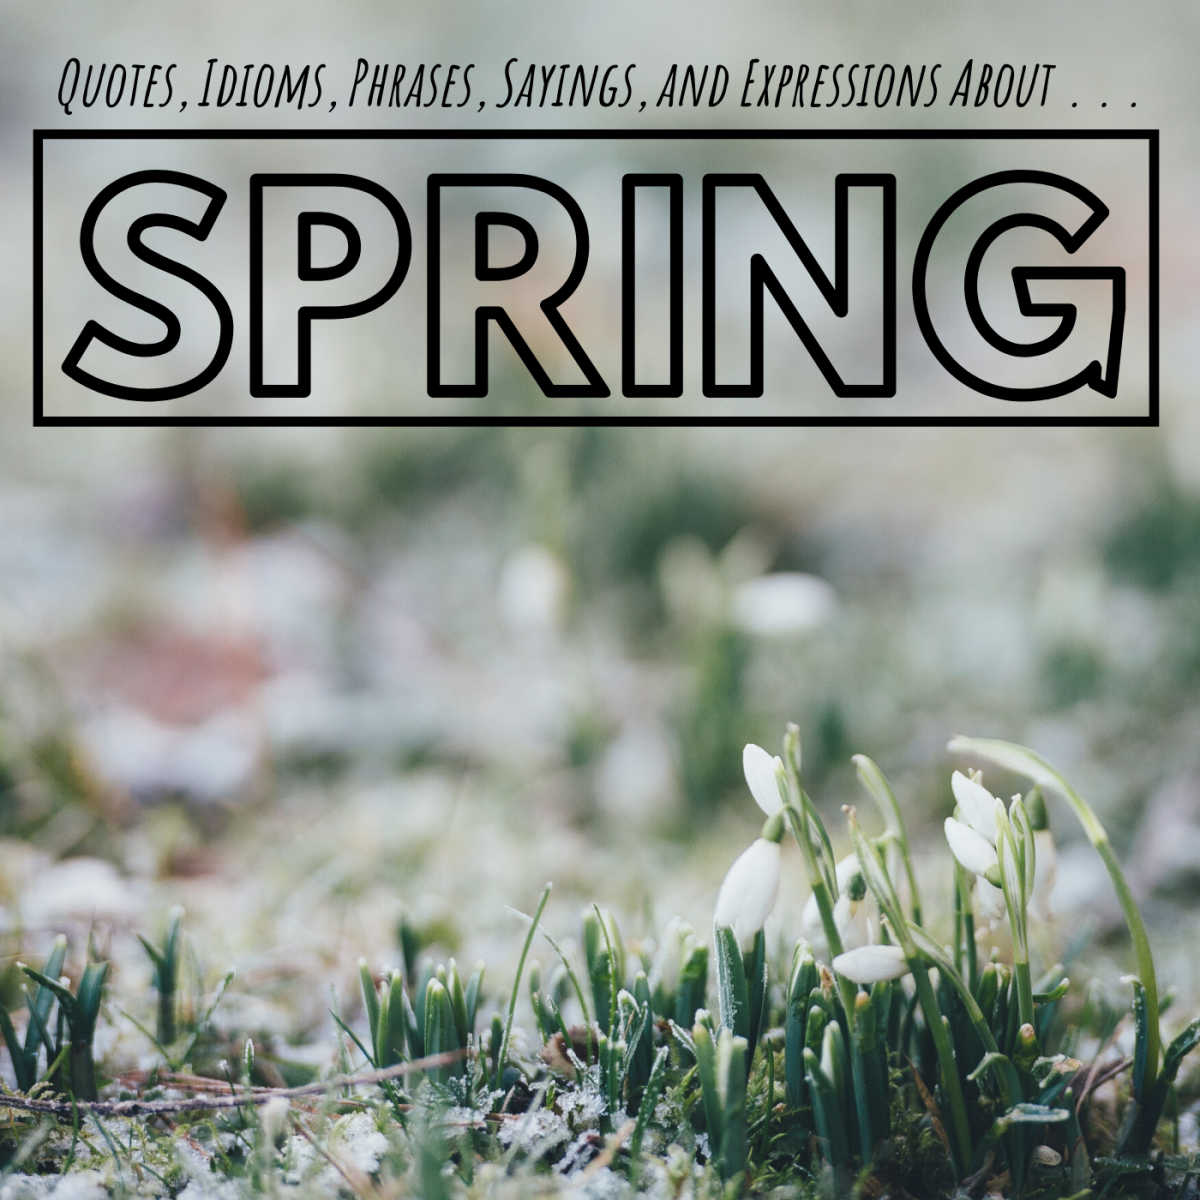 Common Spring Season Idioms, Adages, Quotes, and Sayings